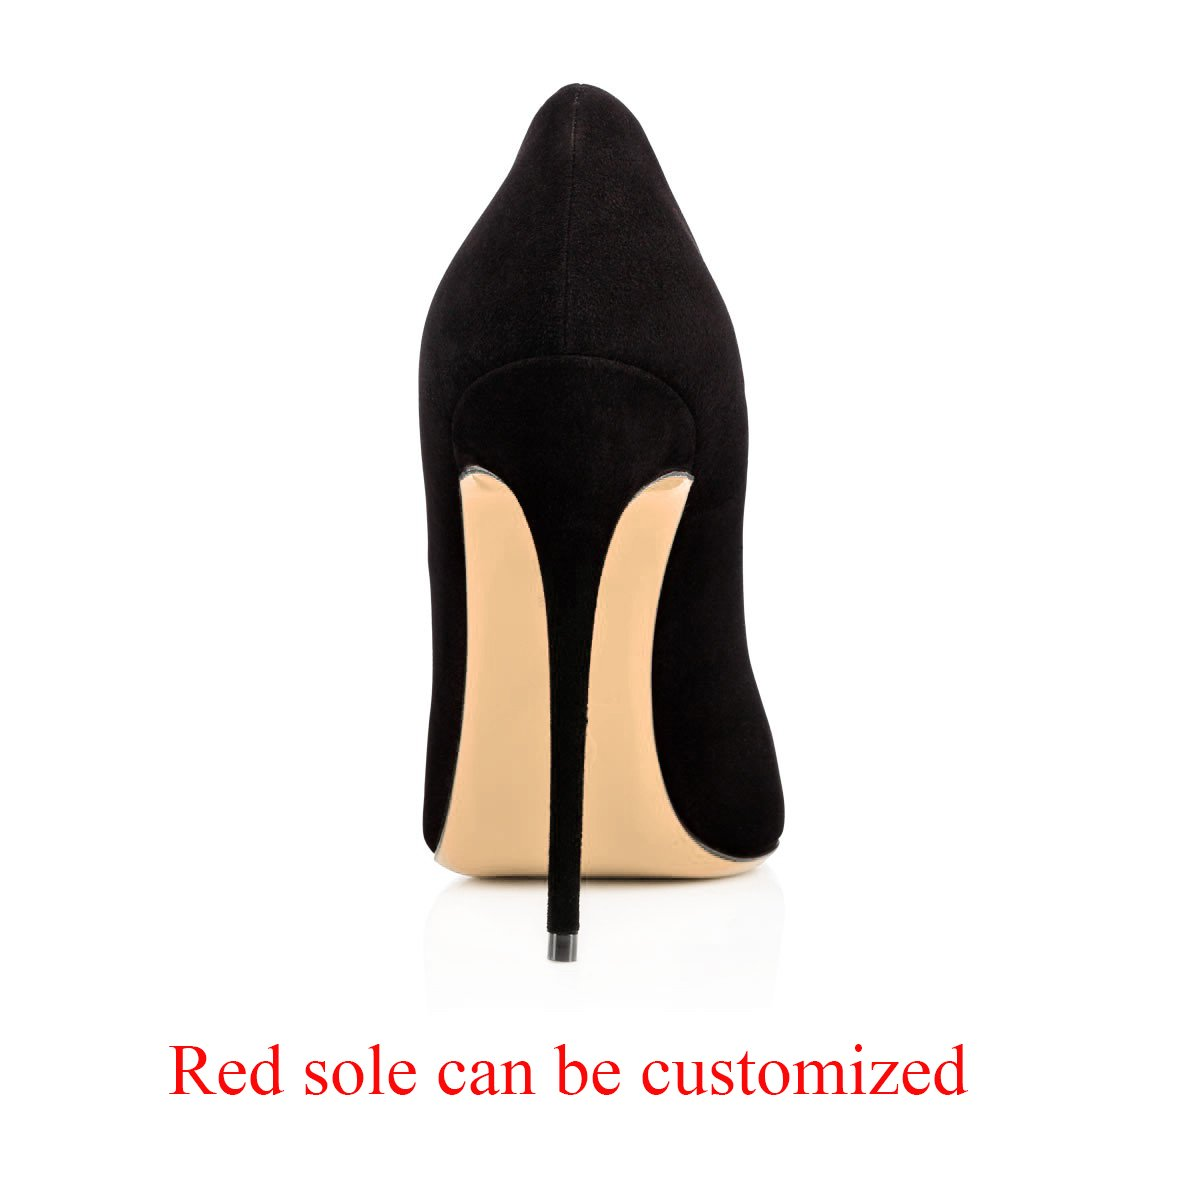 Modemoven Women's Pointy Toe High Heels Slip On Stilettos Large Size Wedding Party Evening Pumps Shoes B0773S8M6Z 12 B(M) US|Black Suede